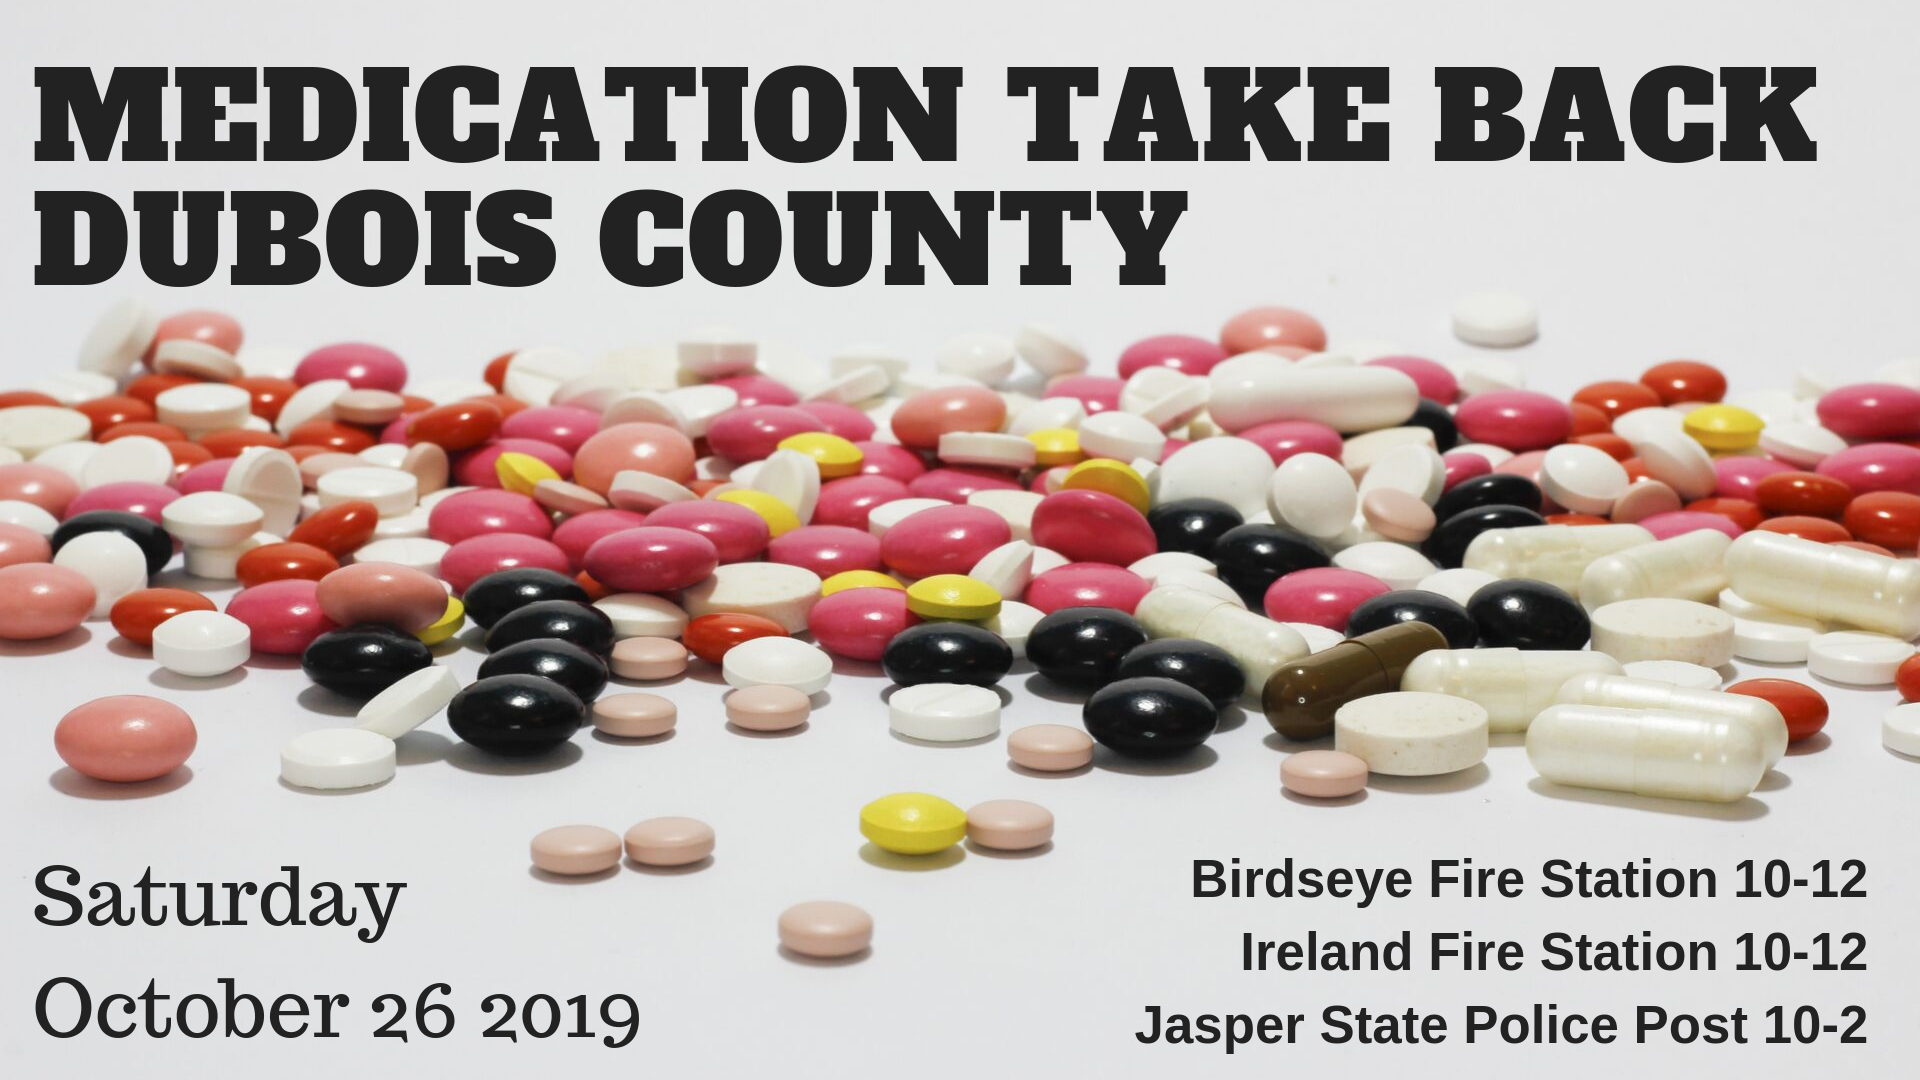 Dubois County Officials Will Host Annual Medication Take Back Event Next Weekend